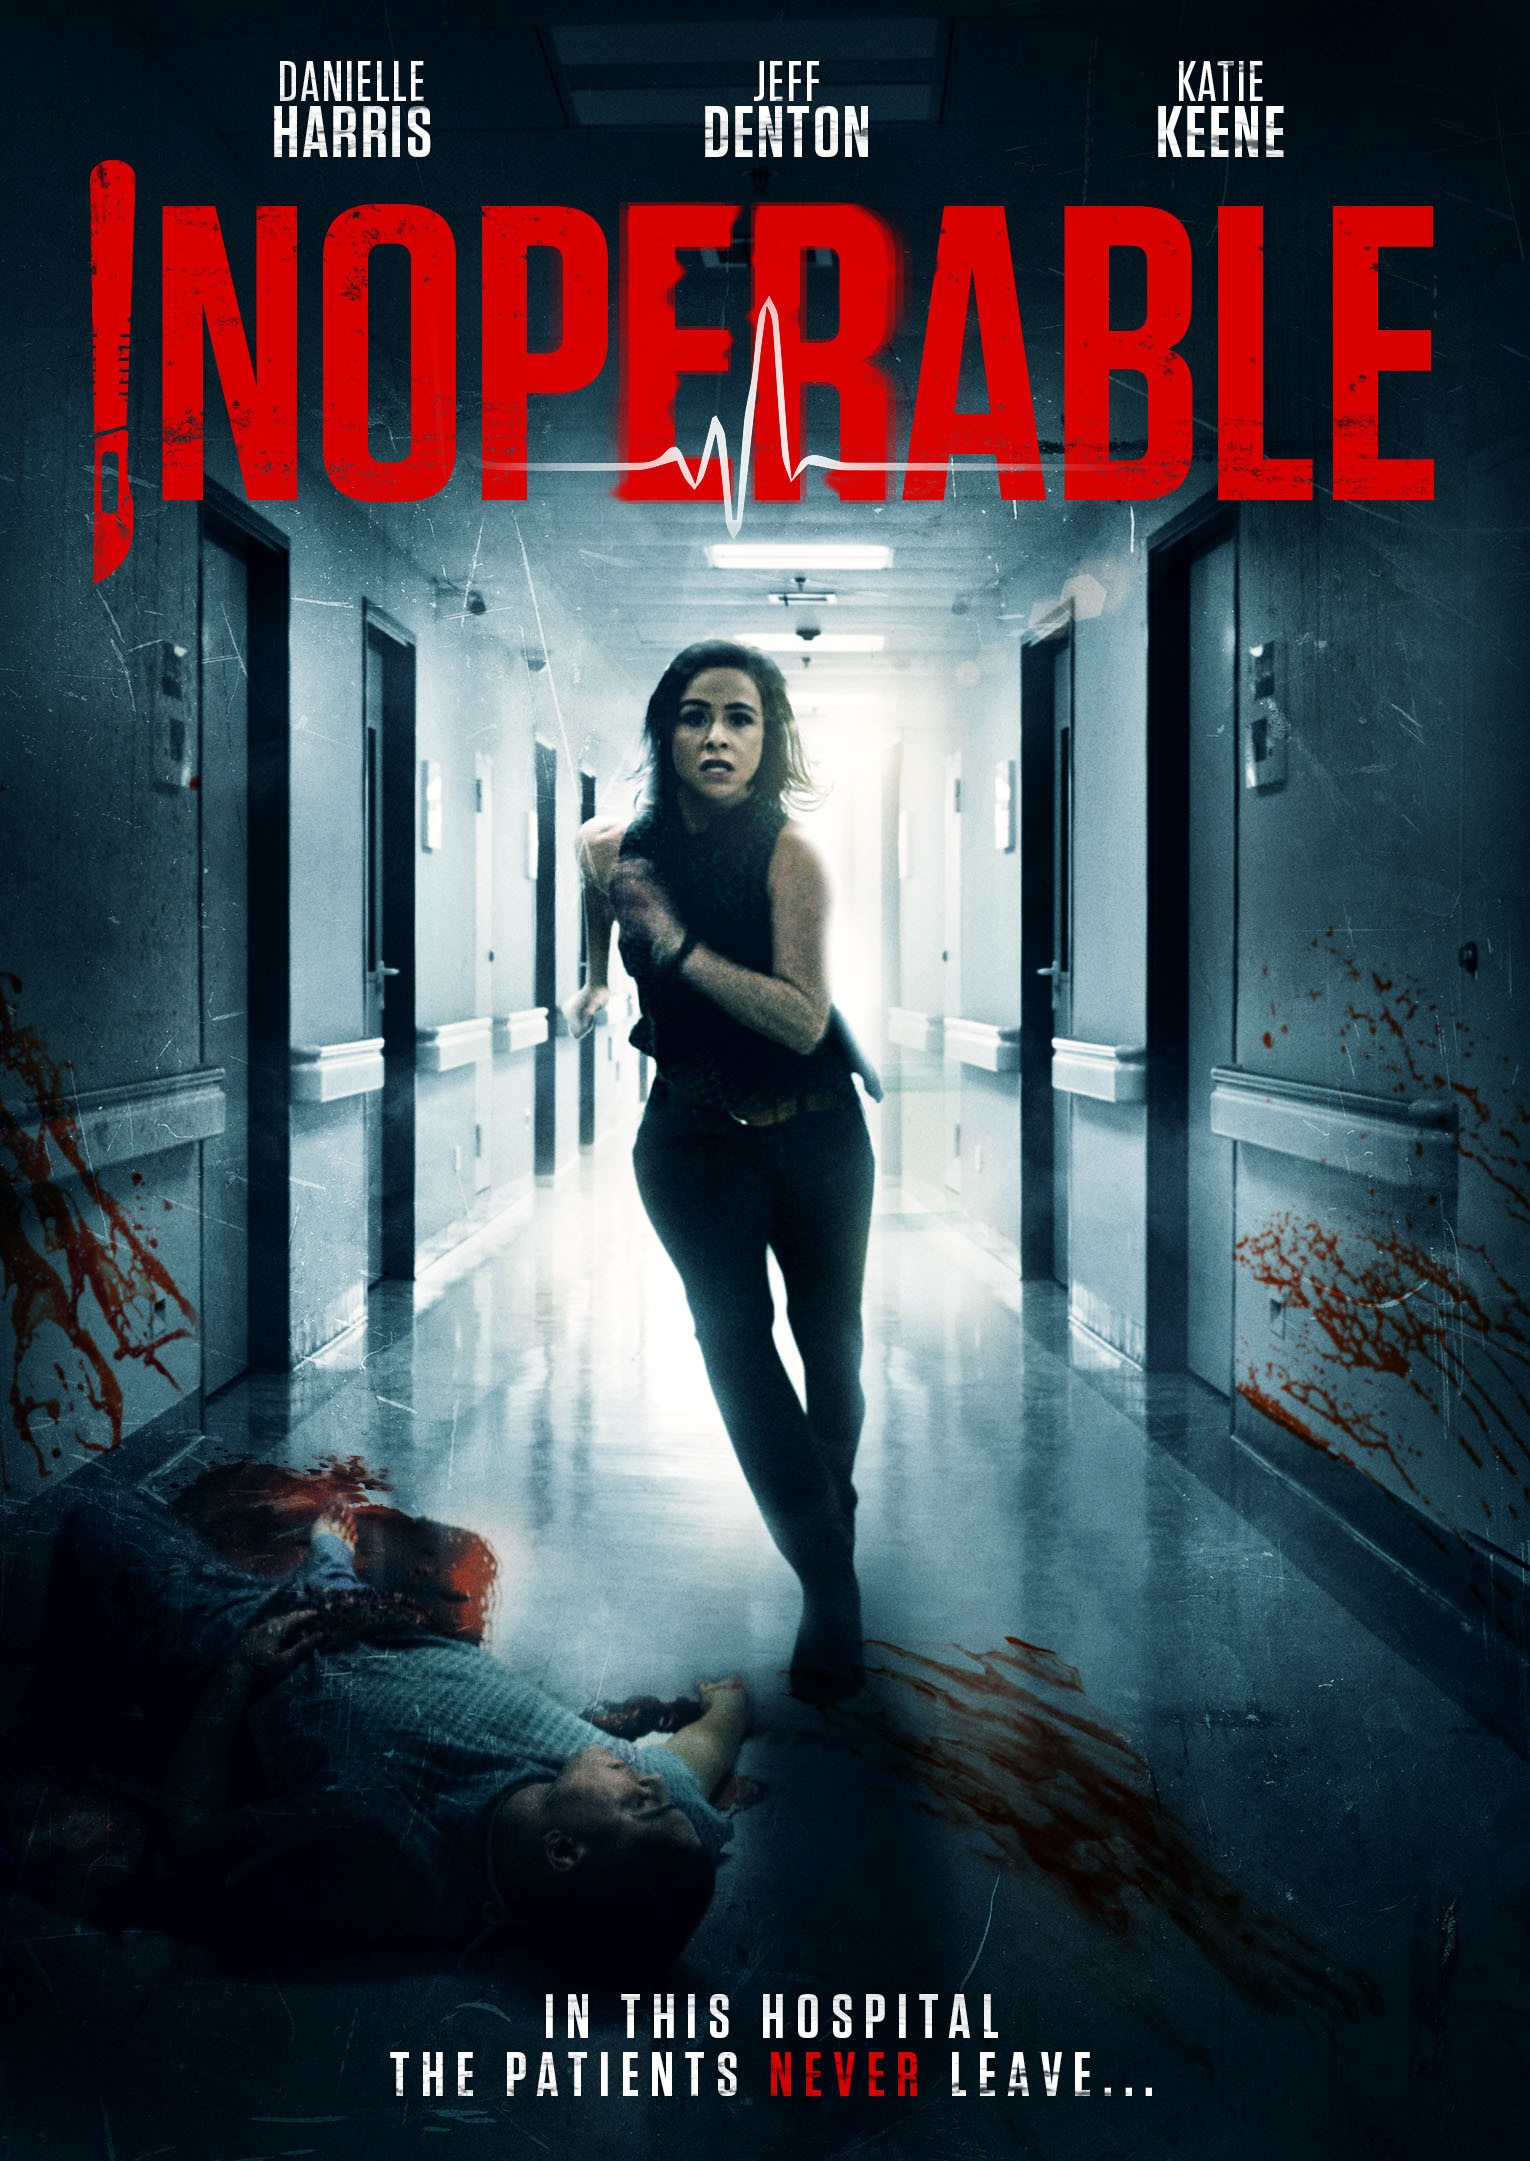 Inoperable - Danielle Harris Takes Us Inside The Hospital Walls Of Inoperable